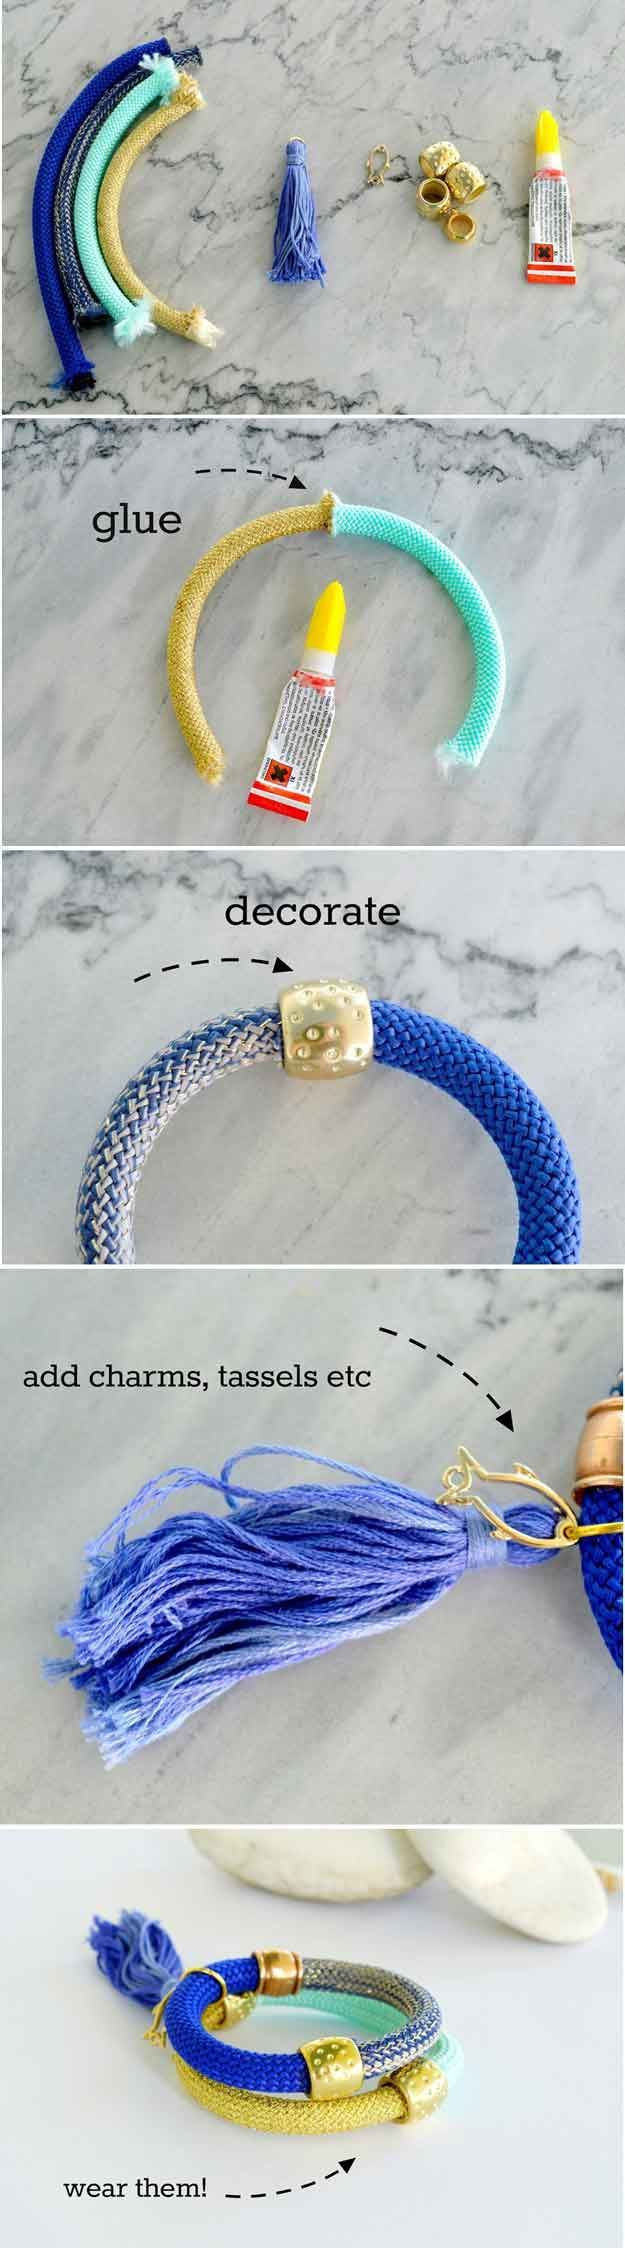 630 best diy jewelry images on pinterest make jewelry diy cheap jewelry projects for girls diy jewelryhandmade solutioingenieria Image collections